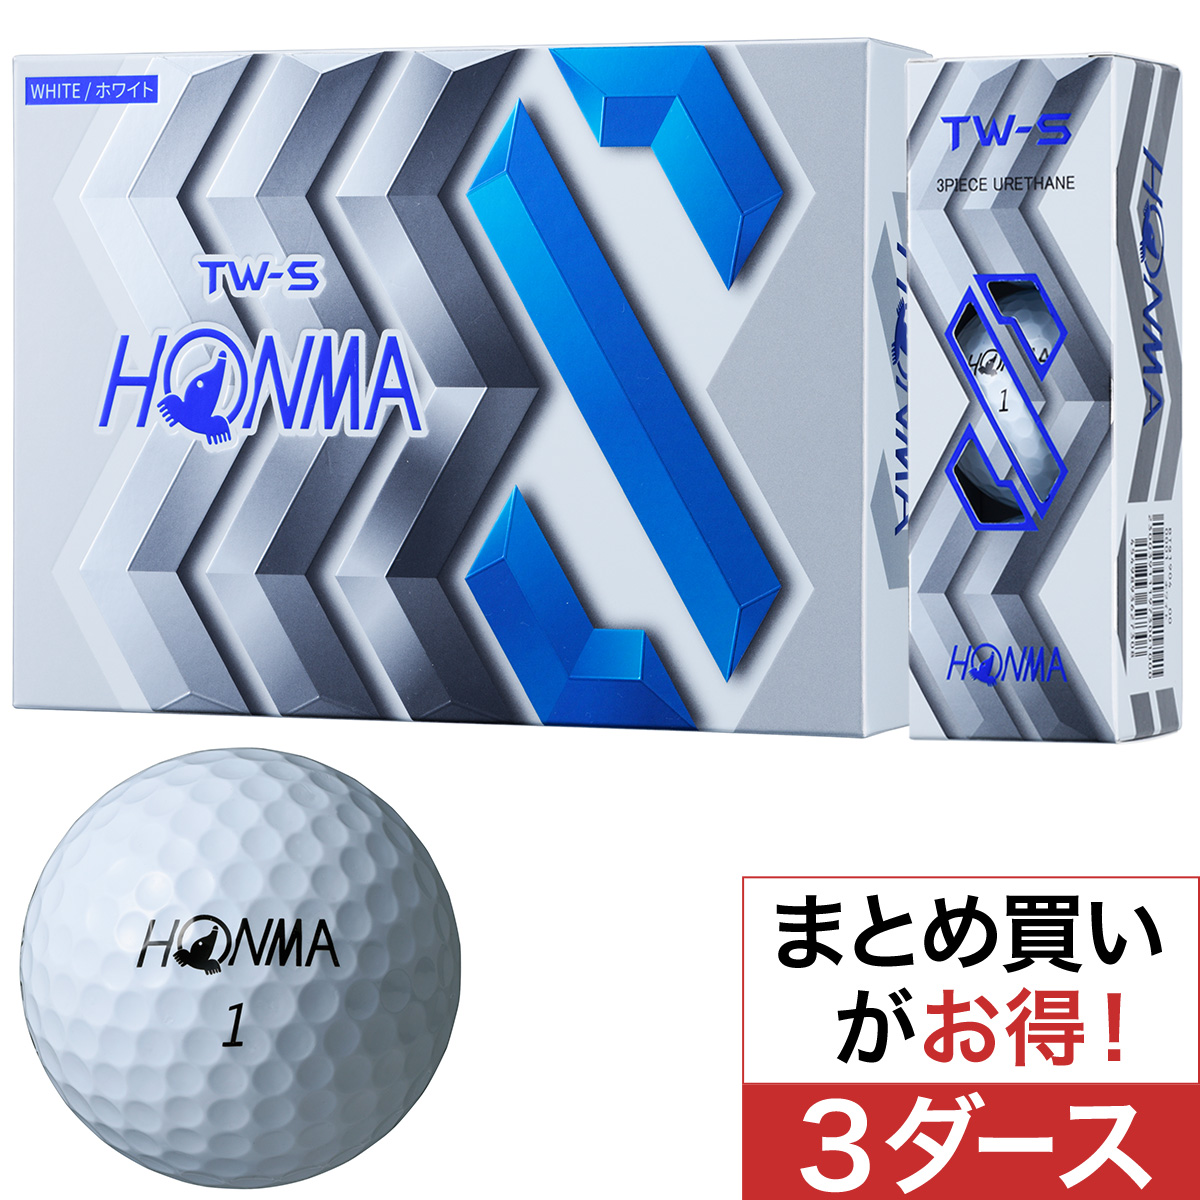 TW-S ボール 3ダースセット